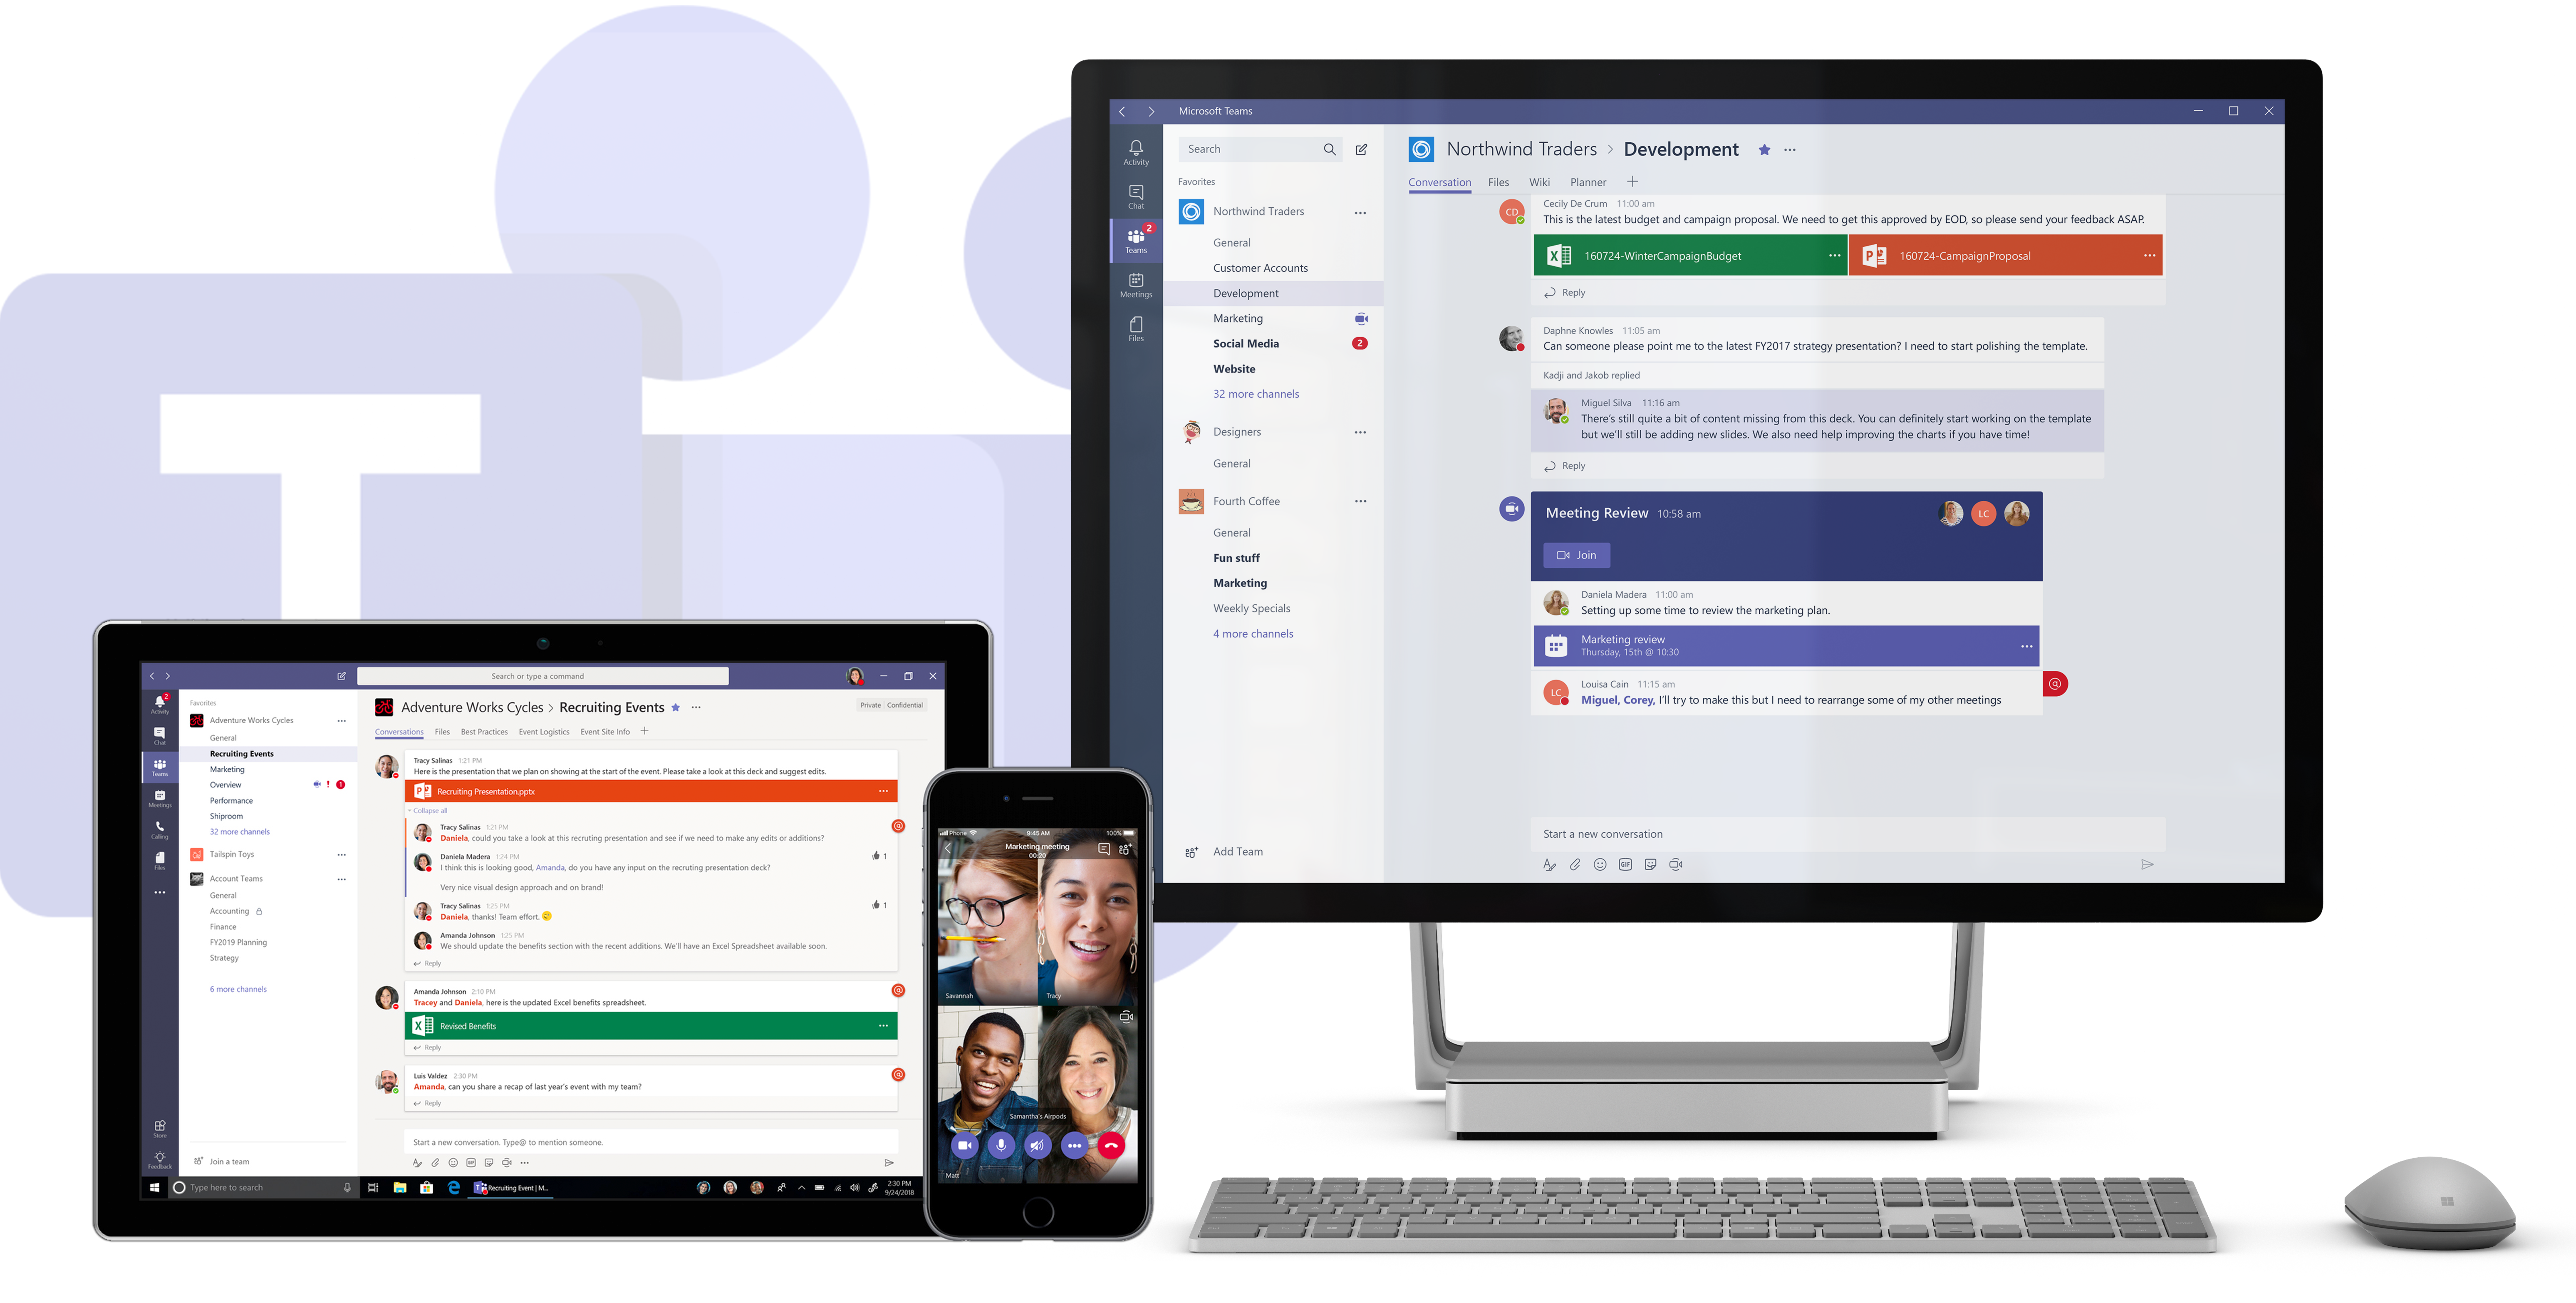 MICROSOFT OFFICE 365 TEAMS CALLING | Technetics Consulting Melbourne